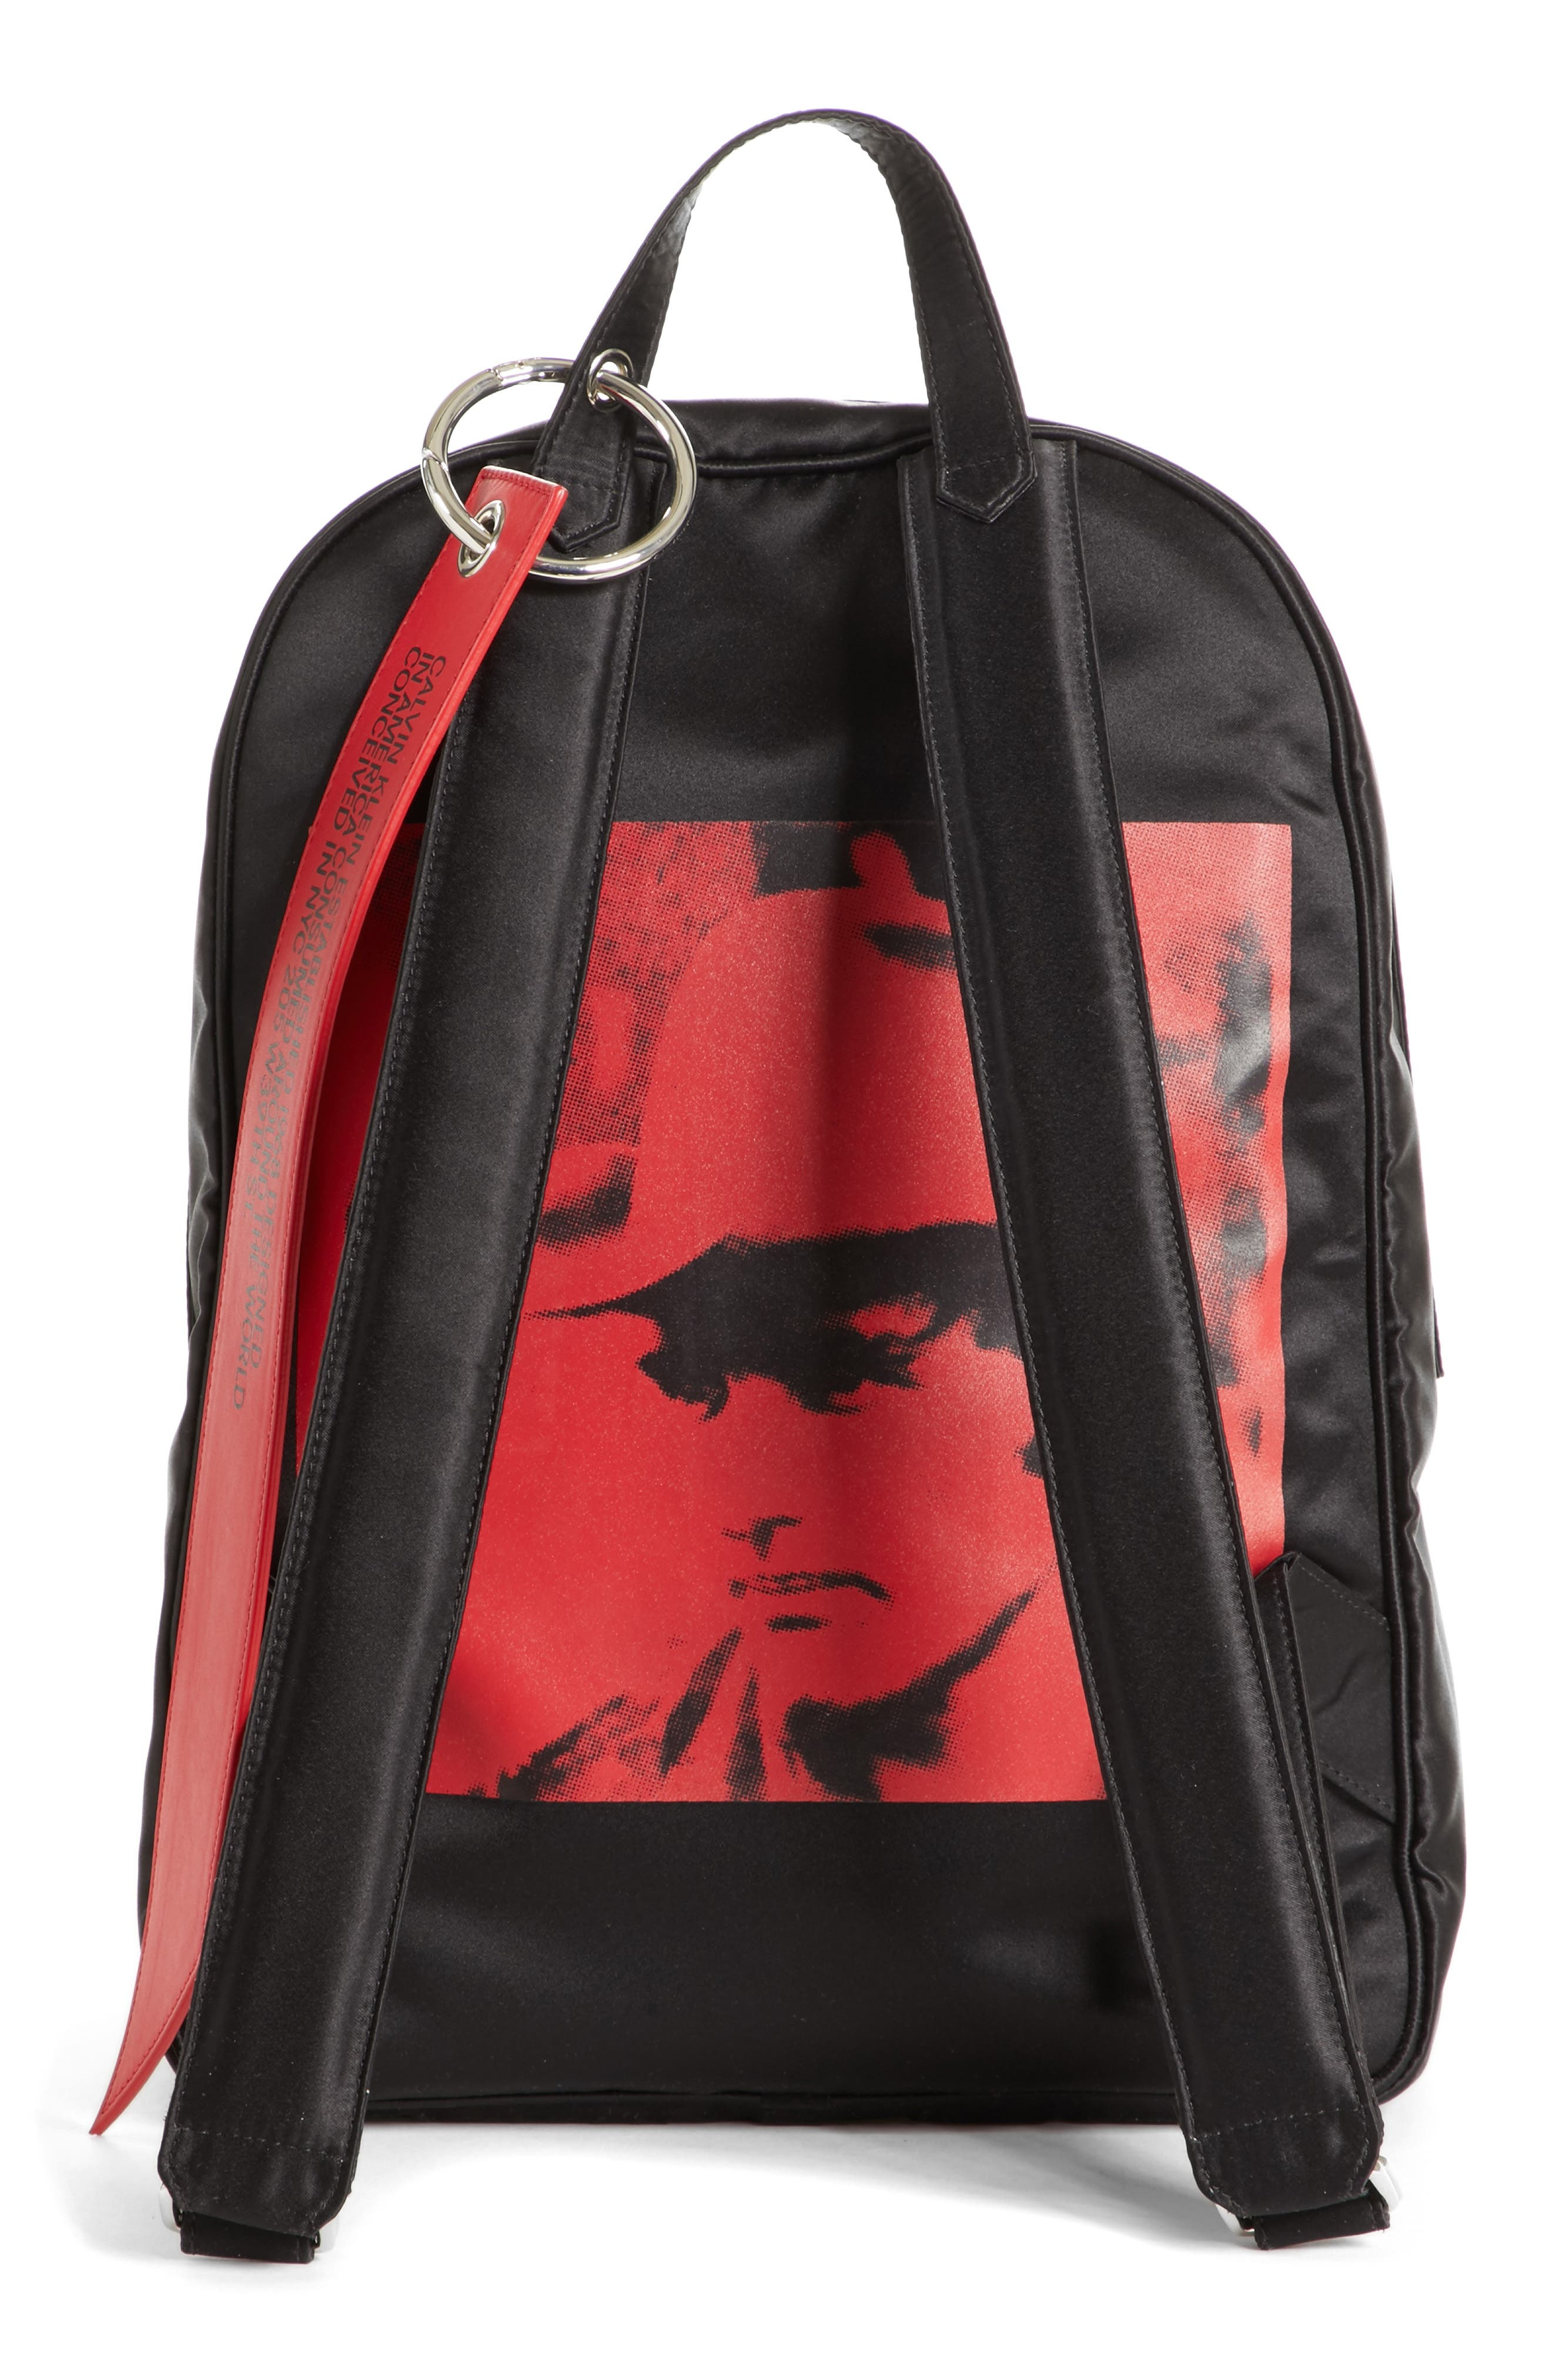 x Andy Warhol Foundation Nylon Backpack,                             Alternate thumbnail 3, color,                             Black/ Red/ Black